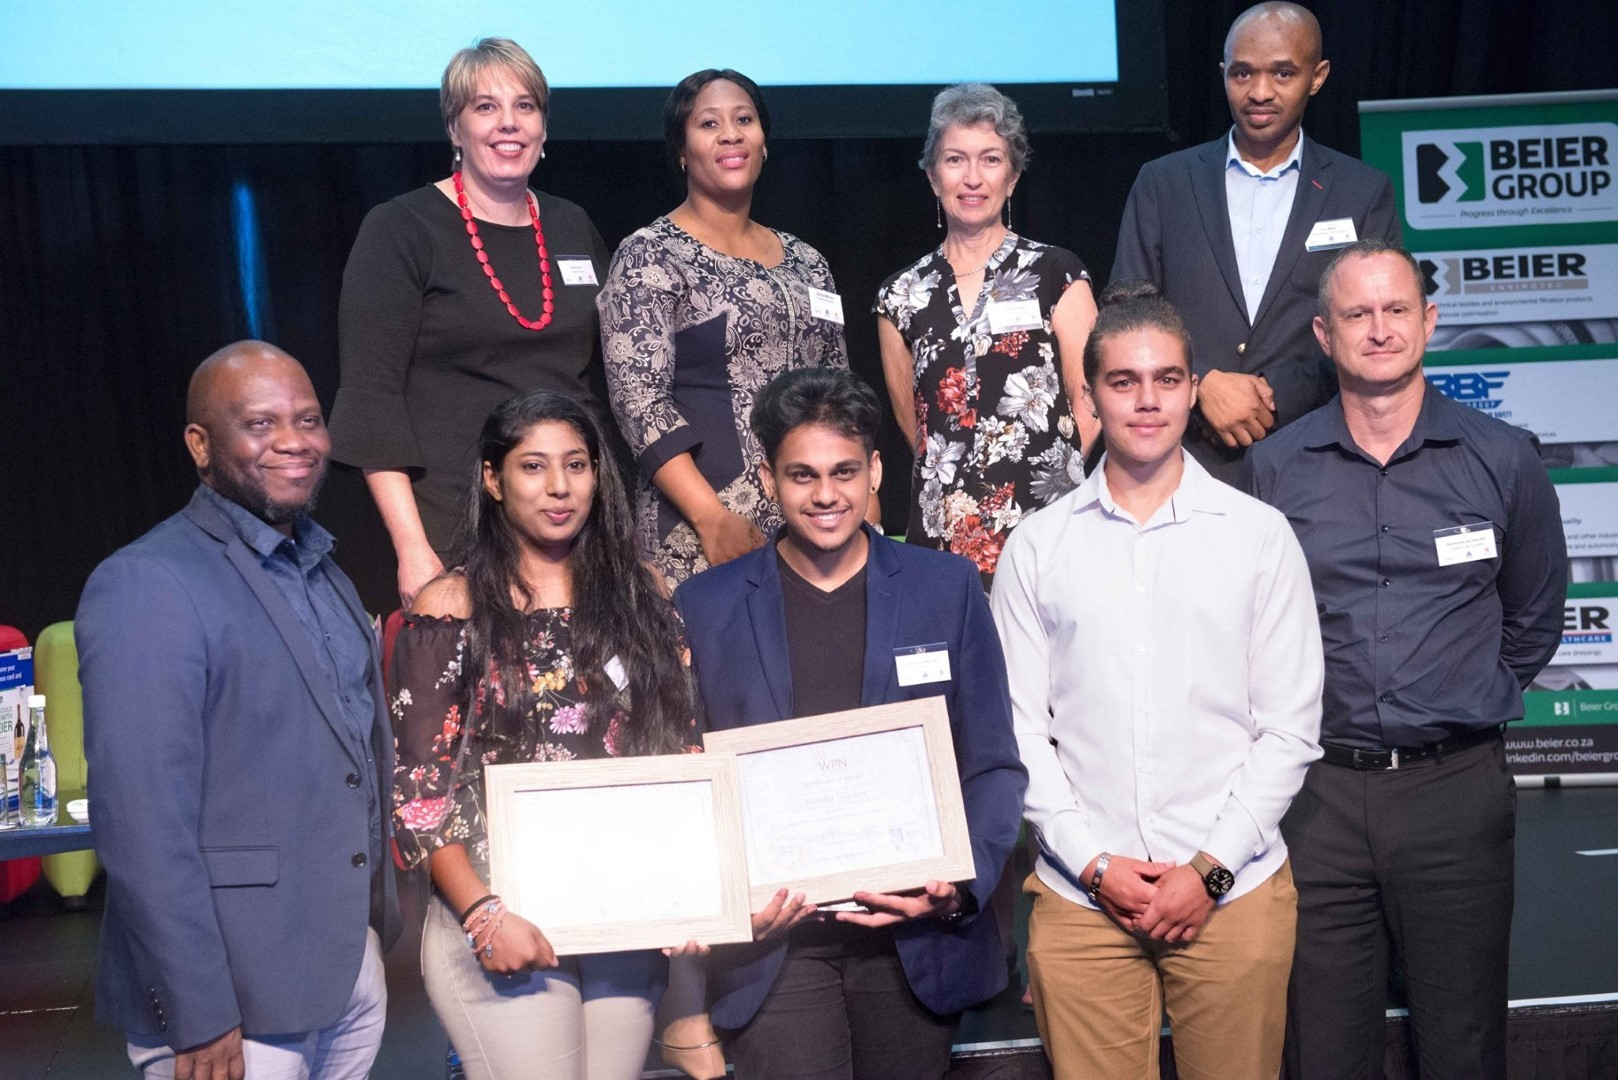 Architecture lecturer Mr Lawrence Ogunsanya, front row extreme left, with Architecture design competition winners Ms Katelyn Gopaul, Mr Kreolin Naicker and finalist Mr Liam Pio Esau.